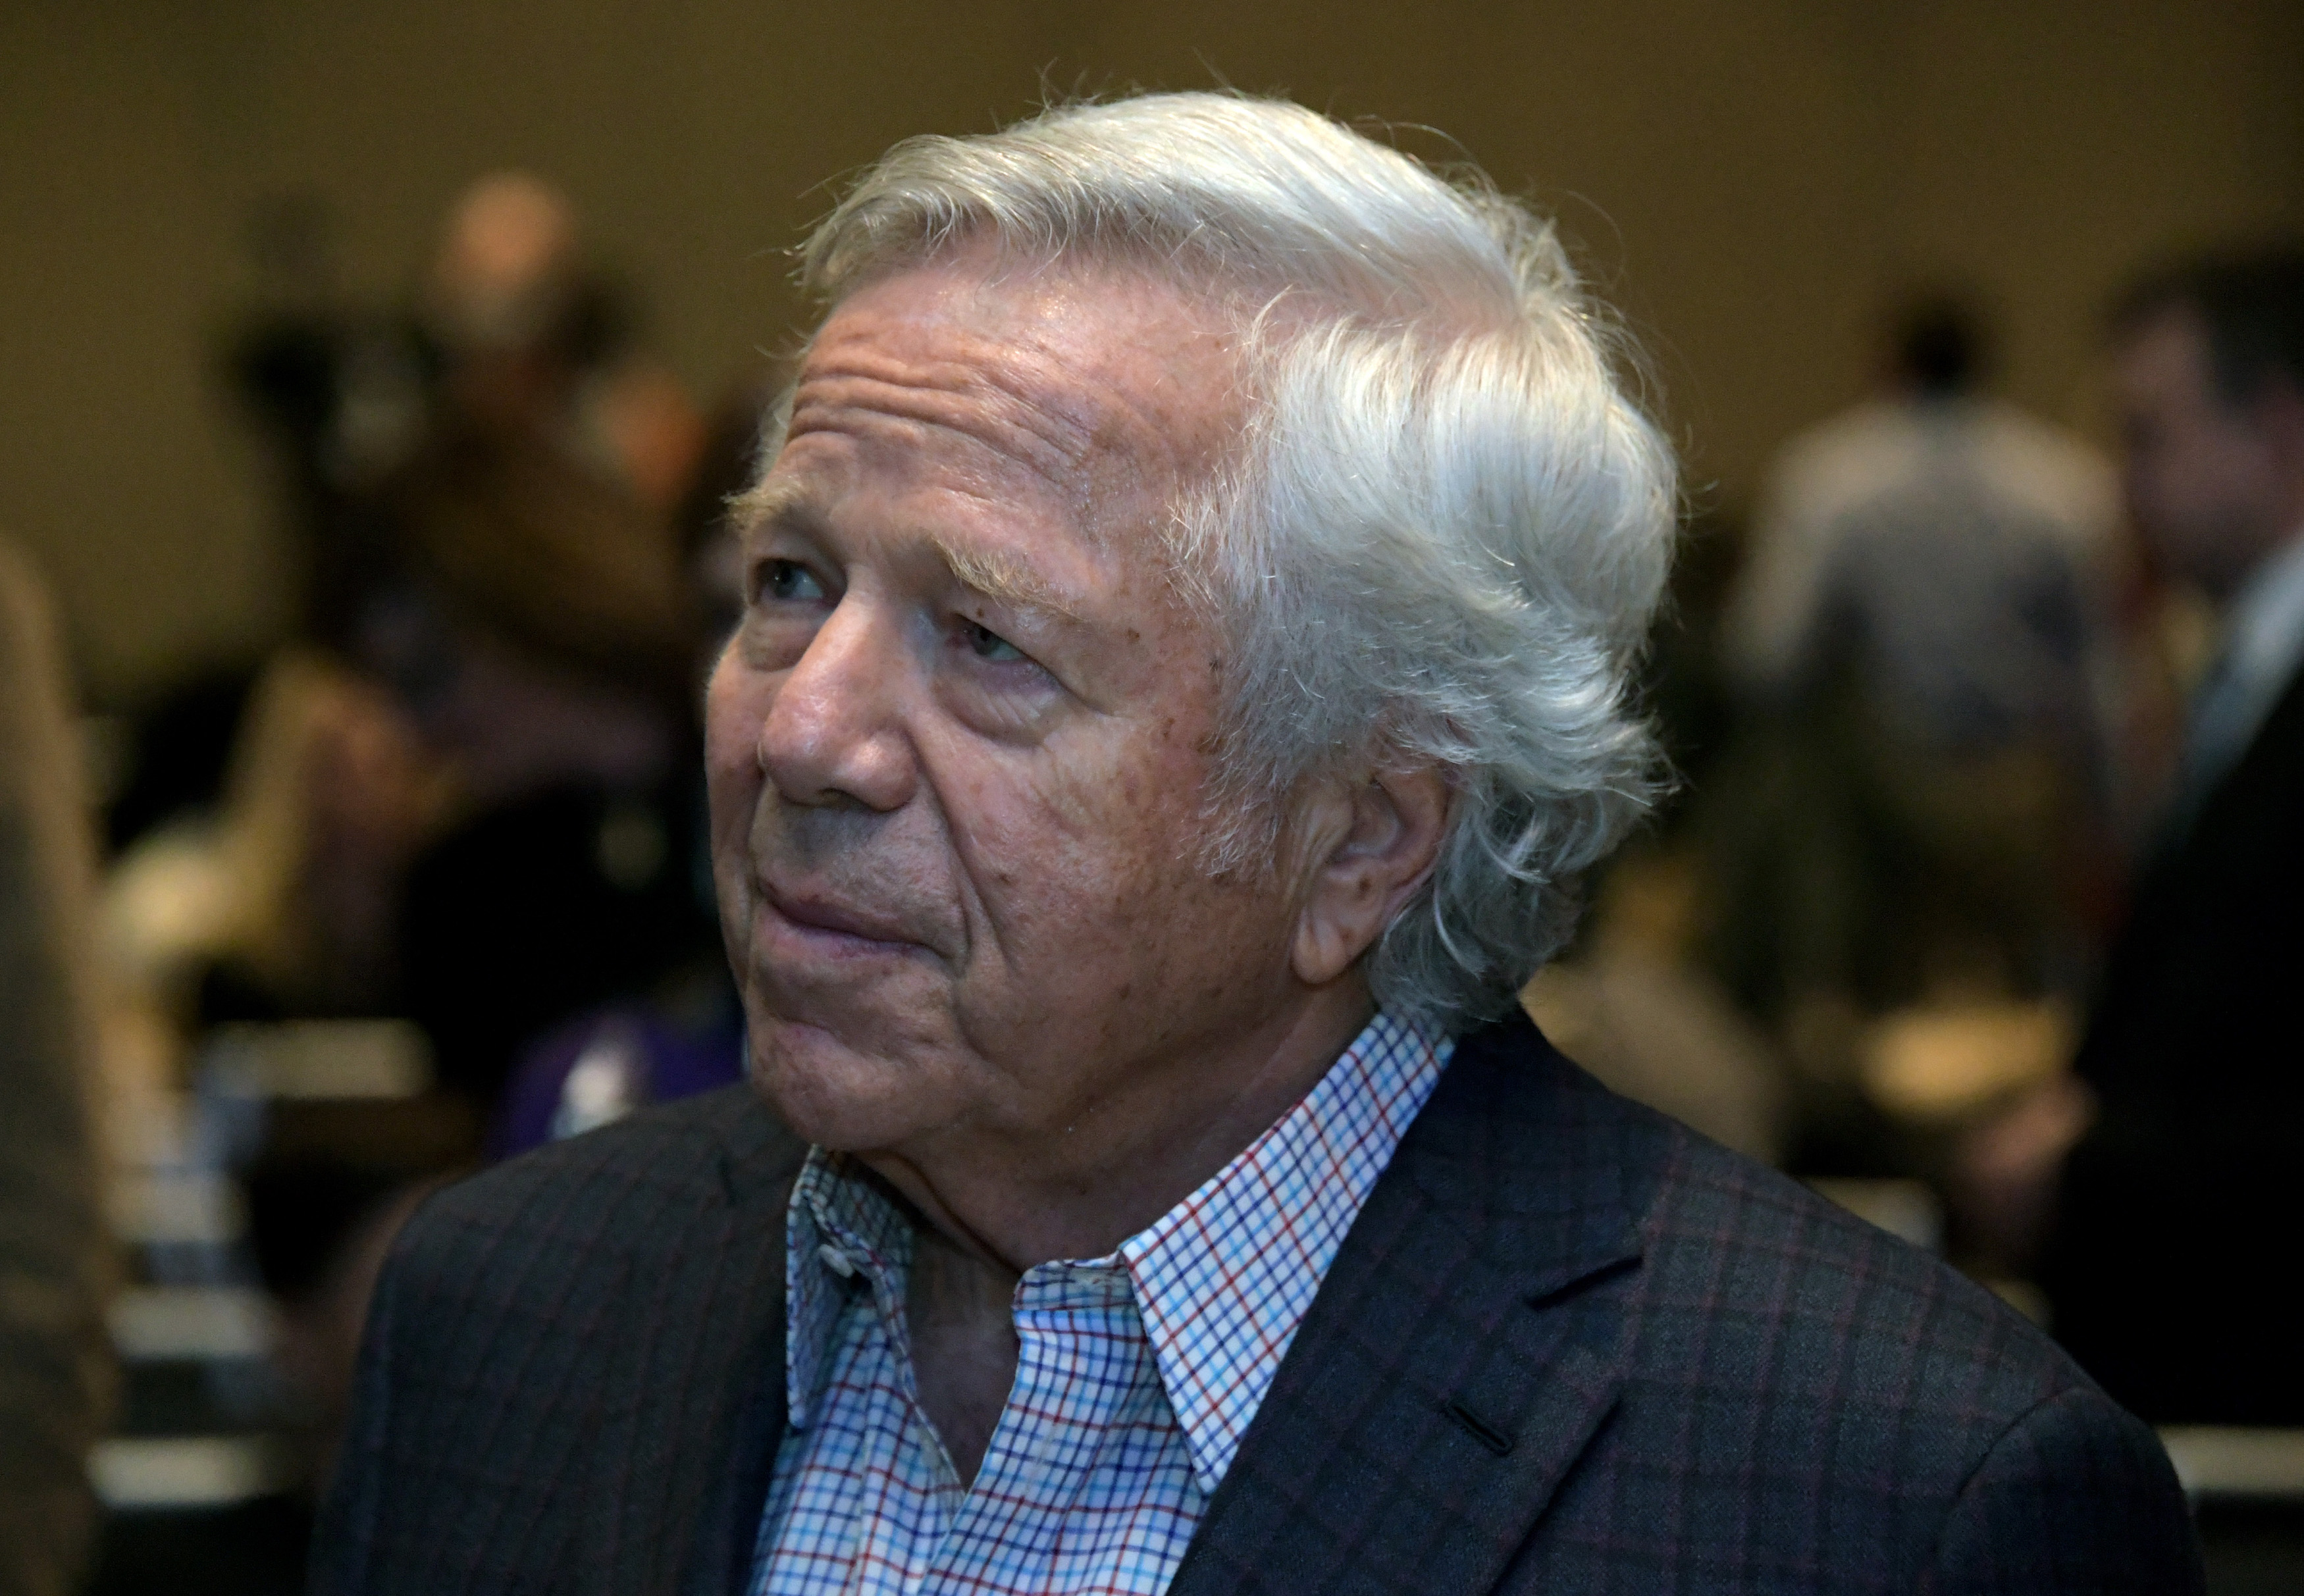 Robert-kraft-kirby-lee